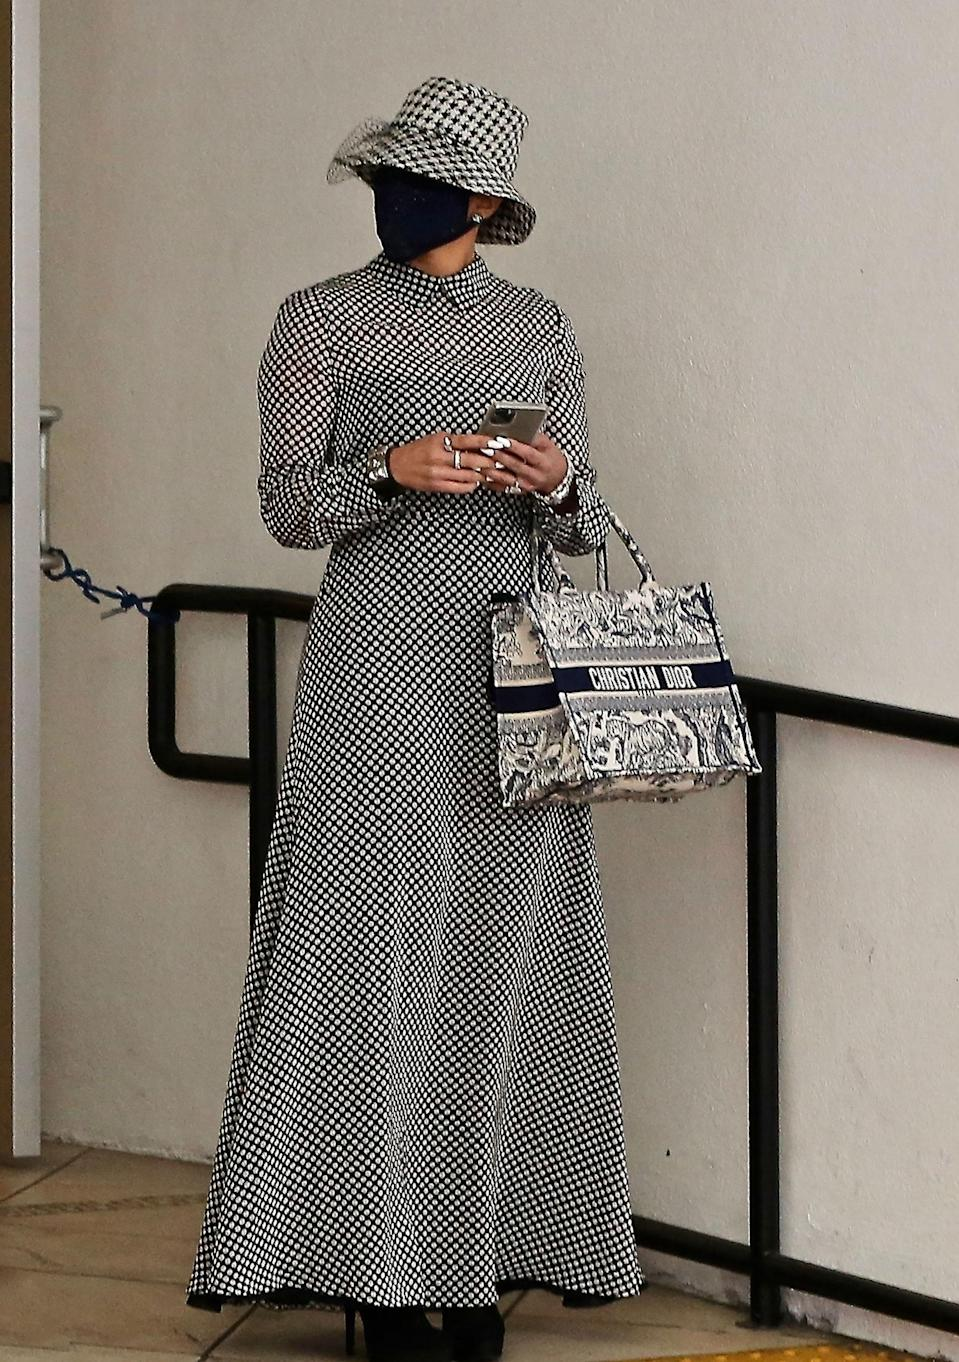 WHO: Jennifer Lopez WHAT: Dior hat, dress, and bag, MasQd facial covering WHERE: Beverly Hills WHEN: December 17